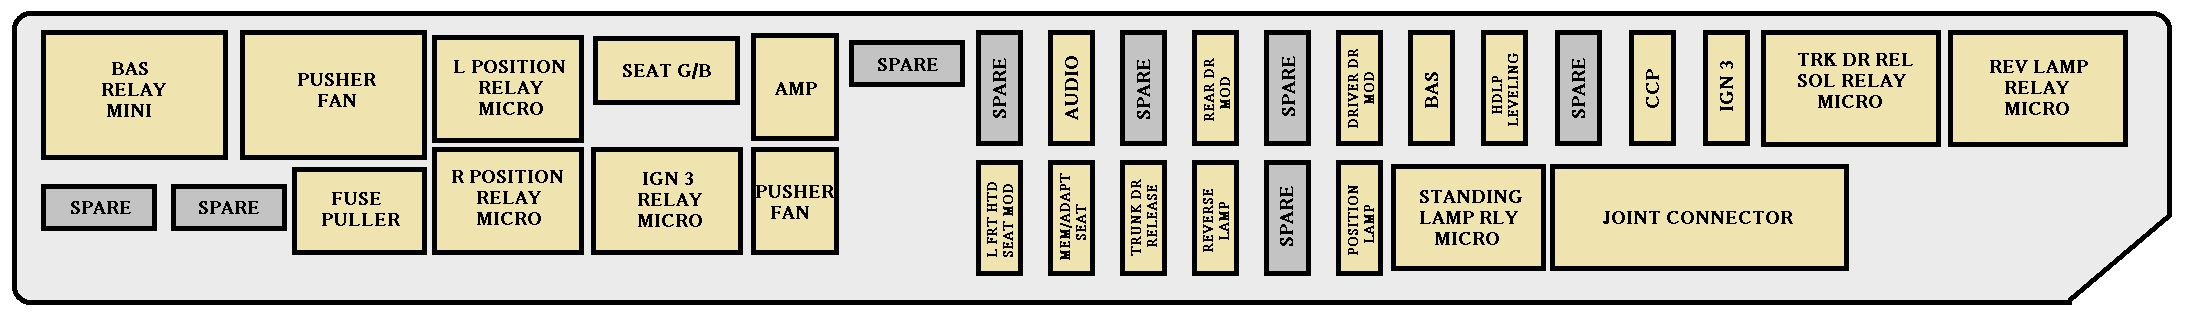 Cadillac CTS mk1 fuse box rear udnerseat drivers side 2004 cadillac cts mk1 (first generation; 2004) fuse box diagram 2003 cadillac deville fuse box diagram at crackthecode.co